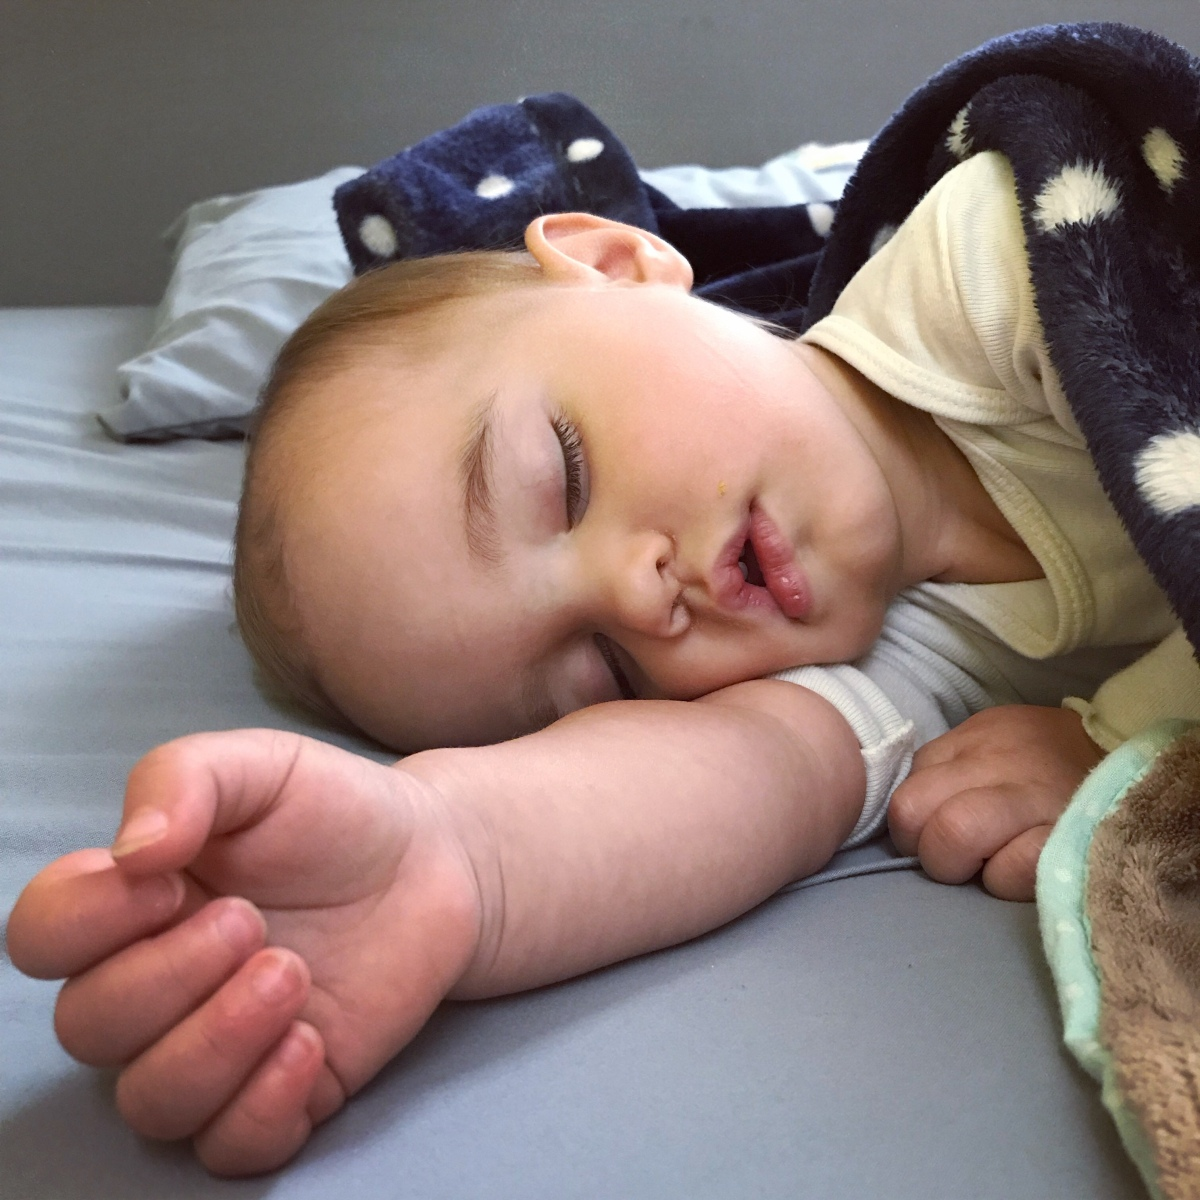 10 Thoughts I Have as I Rock My Toddler to Sleep